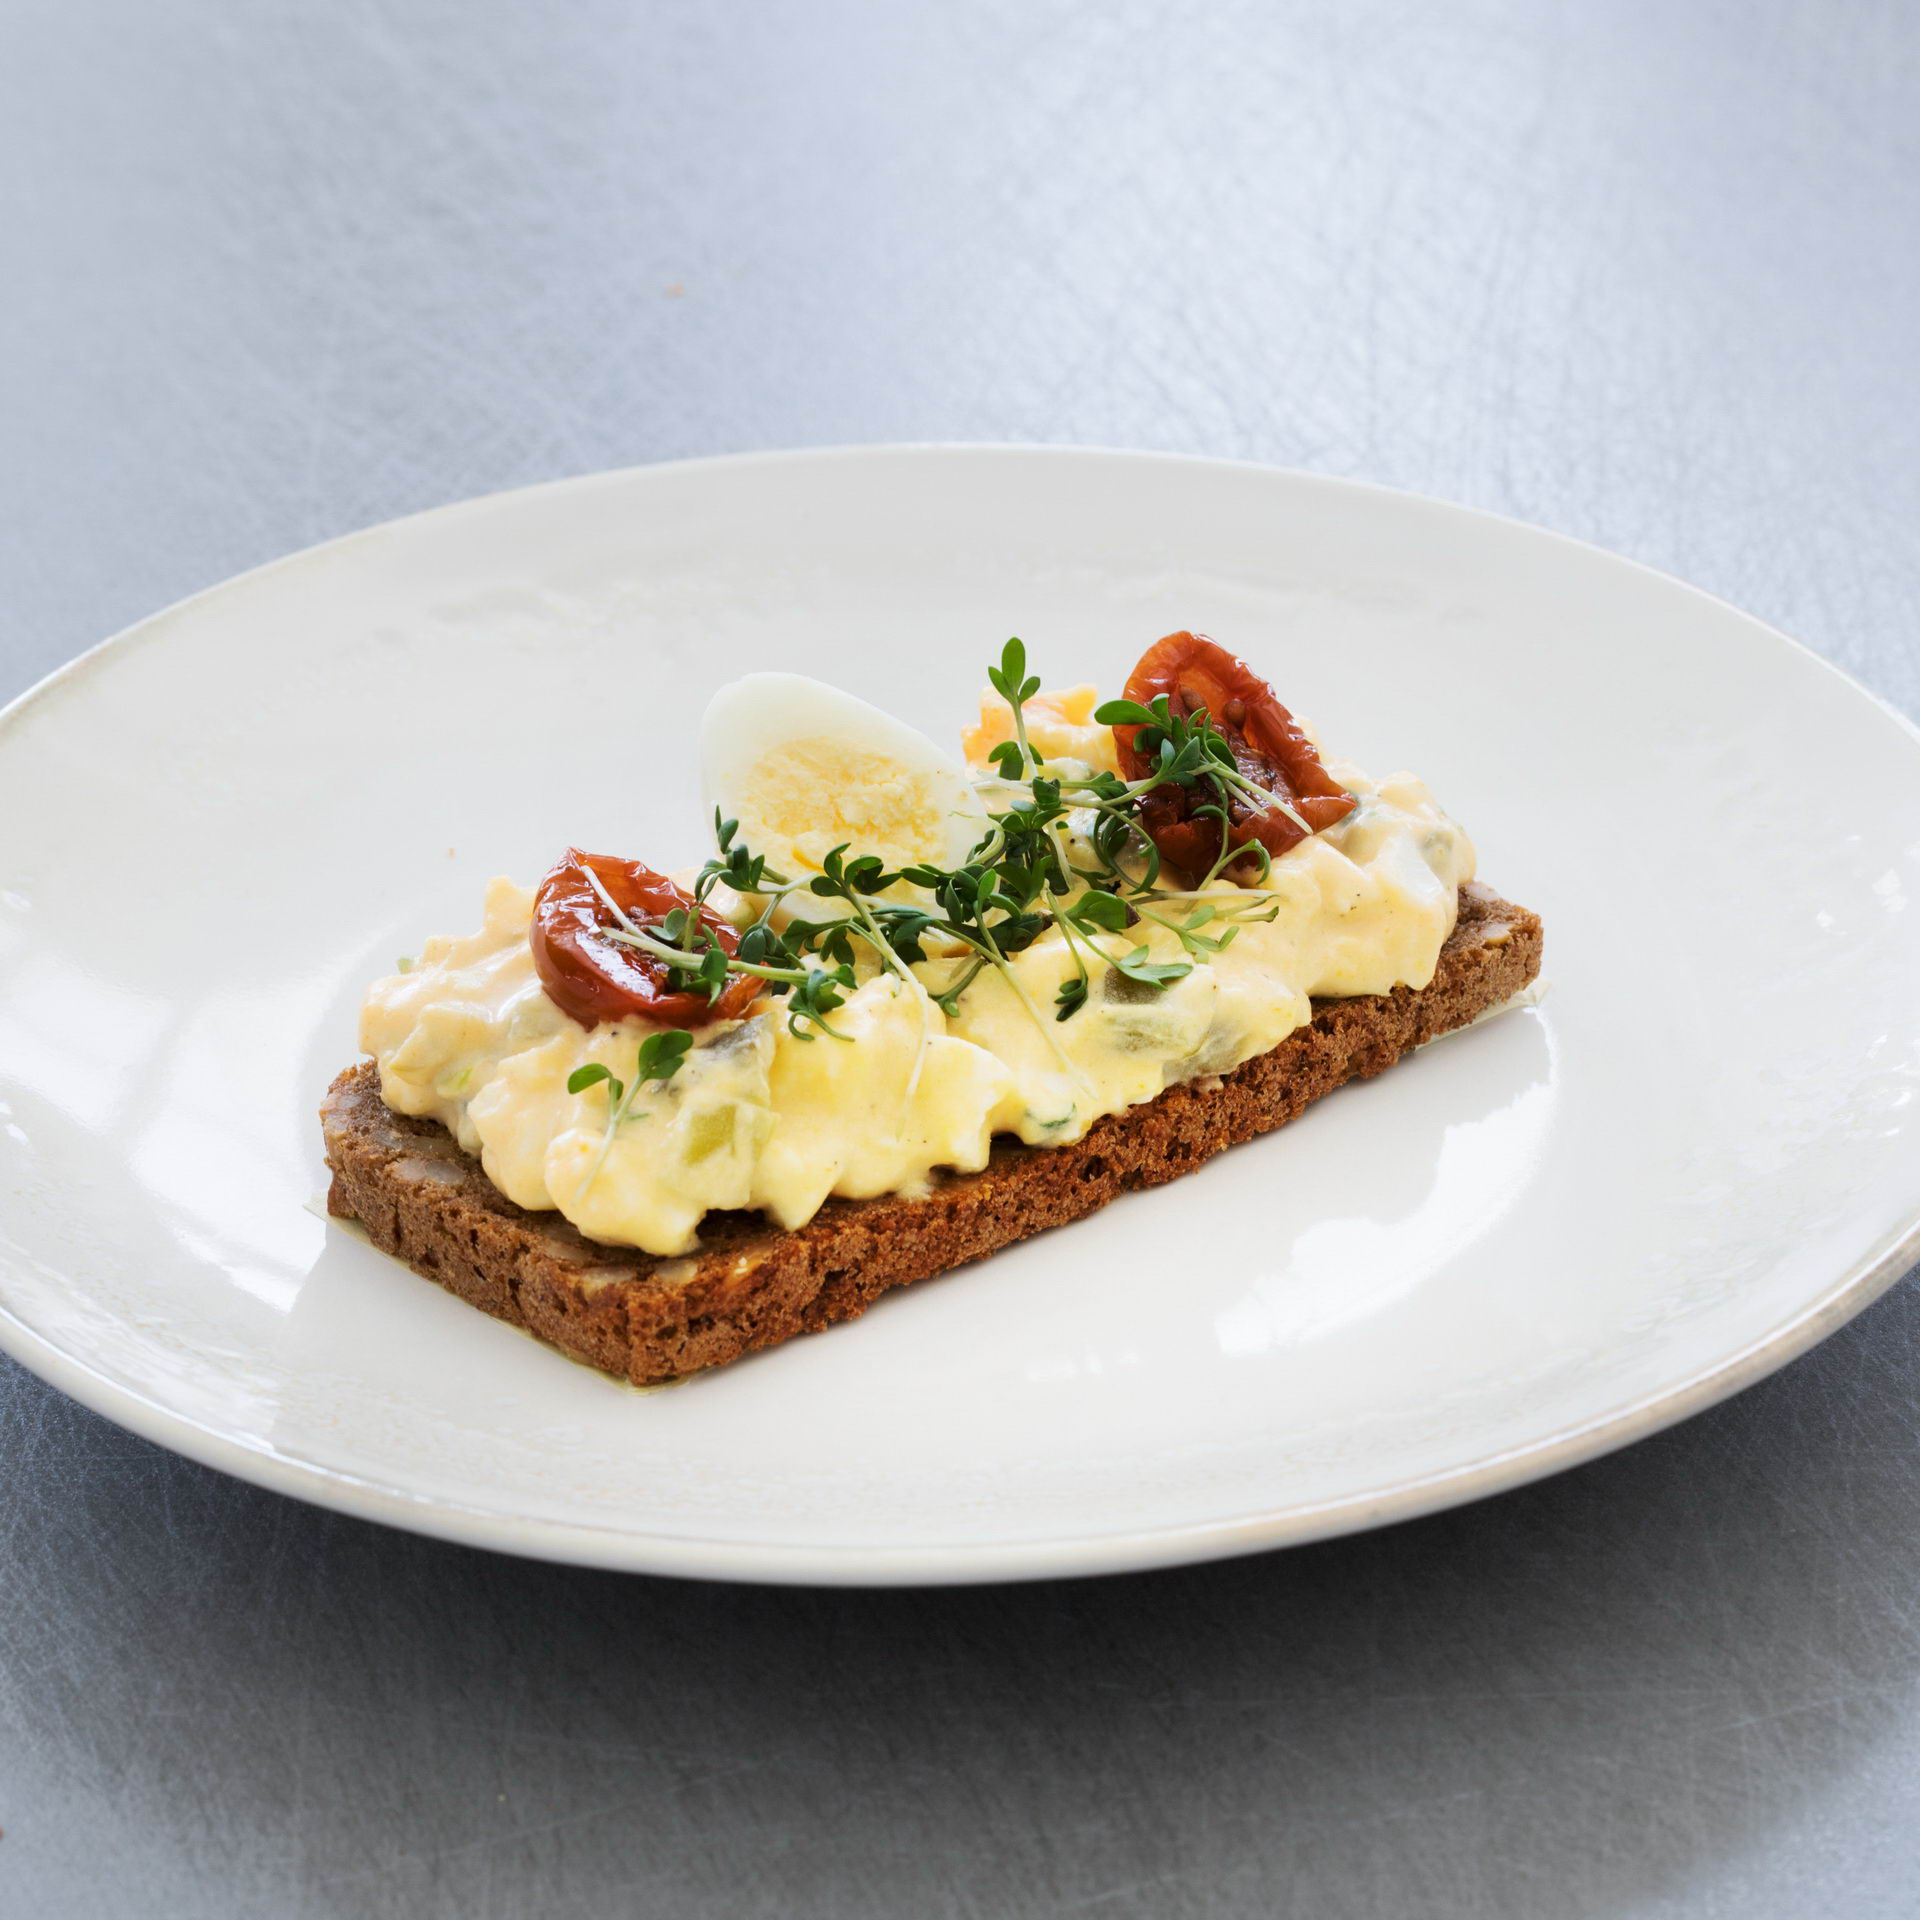 Open sandwich with eggs